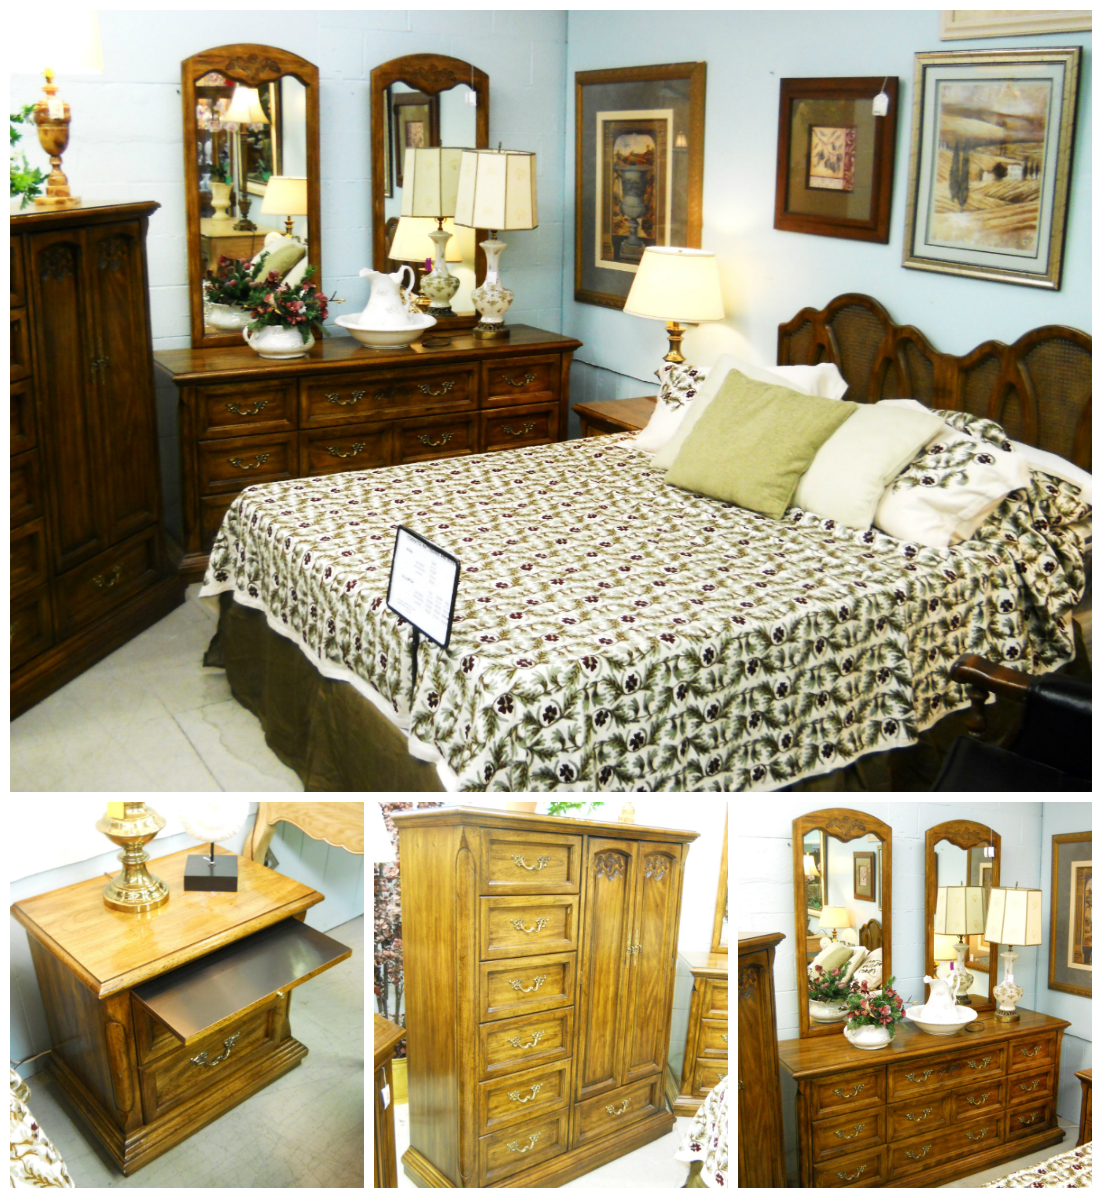 1 13672 american of martinsville queen bedroom set for American martinsville bedroom furniture